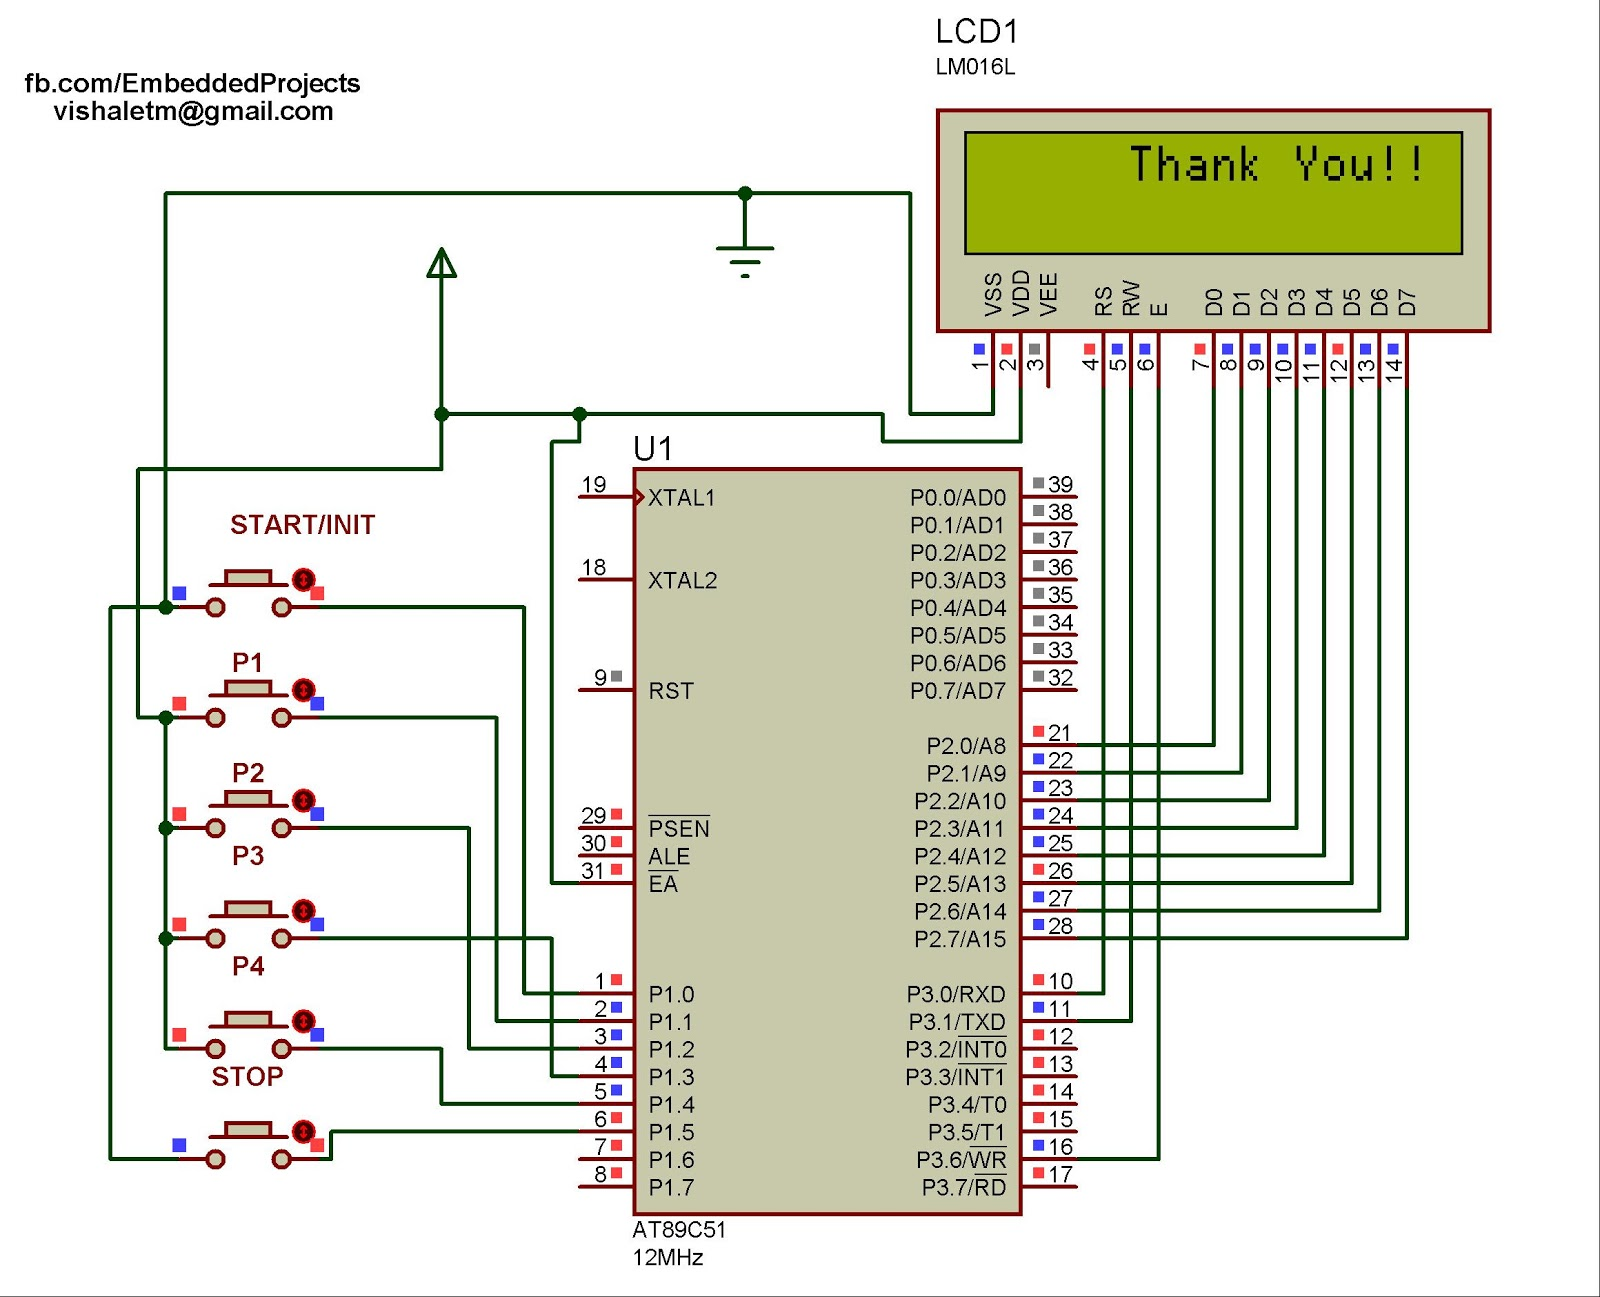 Circuit Diagram Of 89c51 Wiring Libraries Interfacing With 8051 Microcontroller Electronic Voting Machine Using At89c51internet Things Blog